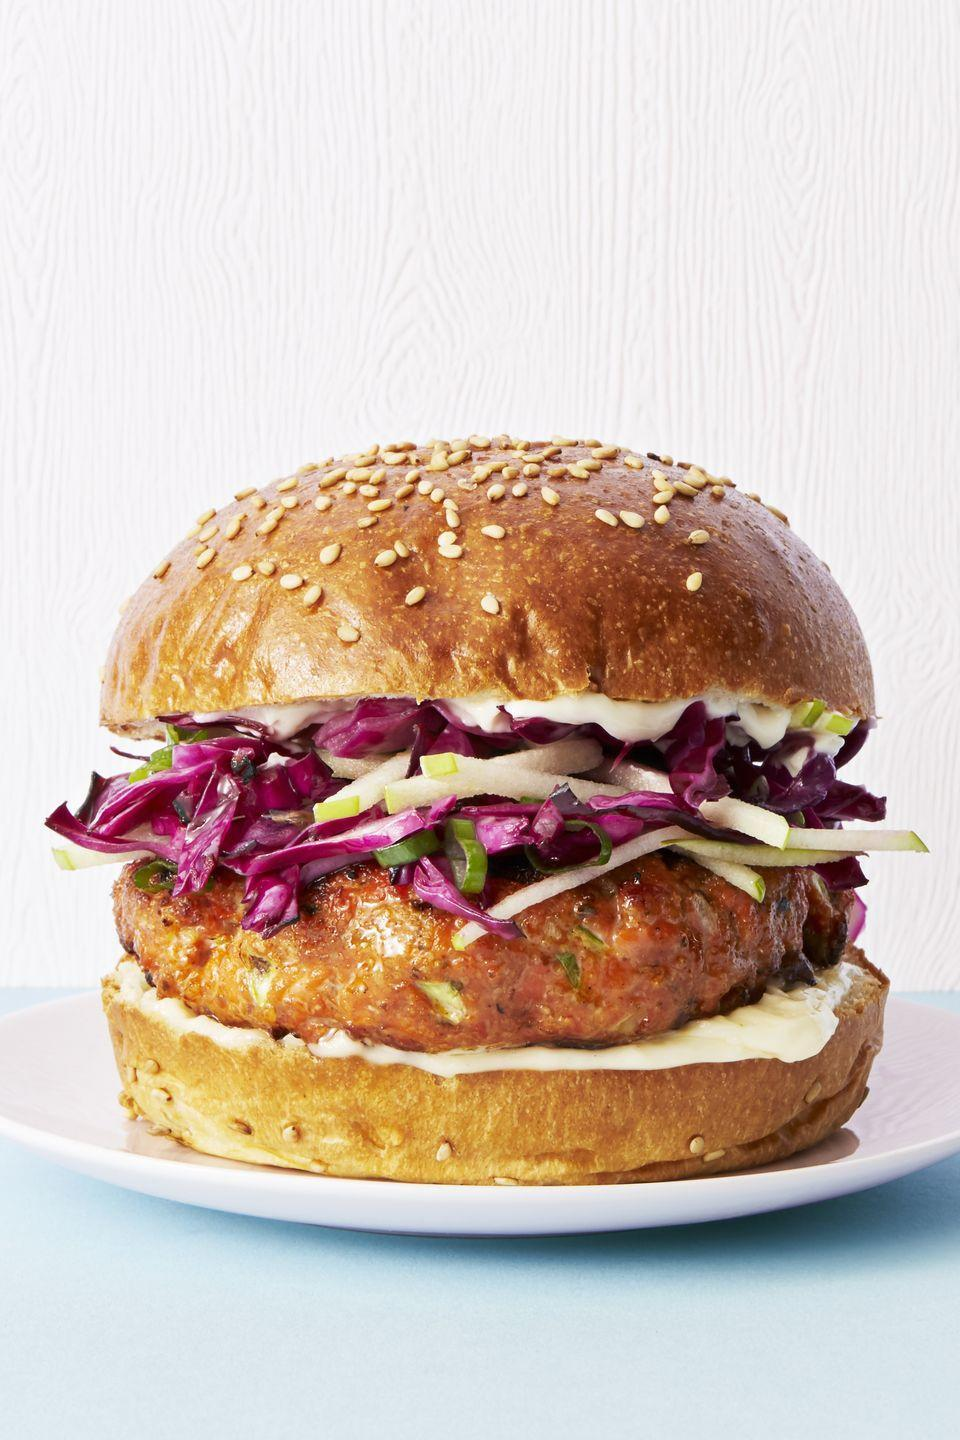 """<p>With curry powder and an apple, cabbage, and cider vinegar slaw, these salmon burgers might just outrank your go-to beef recipe.</p><p><a href=""""https://www.goodhousekeeping.com/food-recipes/easy/a45232/salmon-burgers-cabbage-apple-slaw-recipe/"""" rel=""""nofollow noopener"""" target=""""_blank"""" data-ylk=""""slk:Get the recipe for Salmon Burgers with Cabbage-Apple Slaw »"""" class=""""link rapid-noclick-resp""""><em>Get the recipe for Salmon Burgers with Cabbage-Apple Slaw »</em></a></p>"""